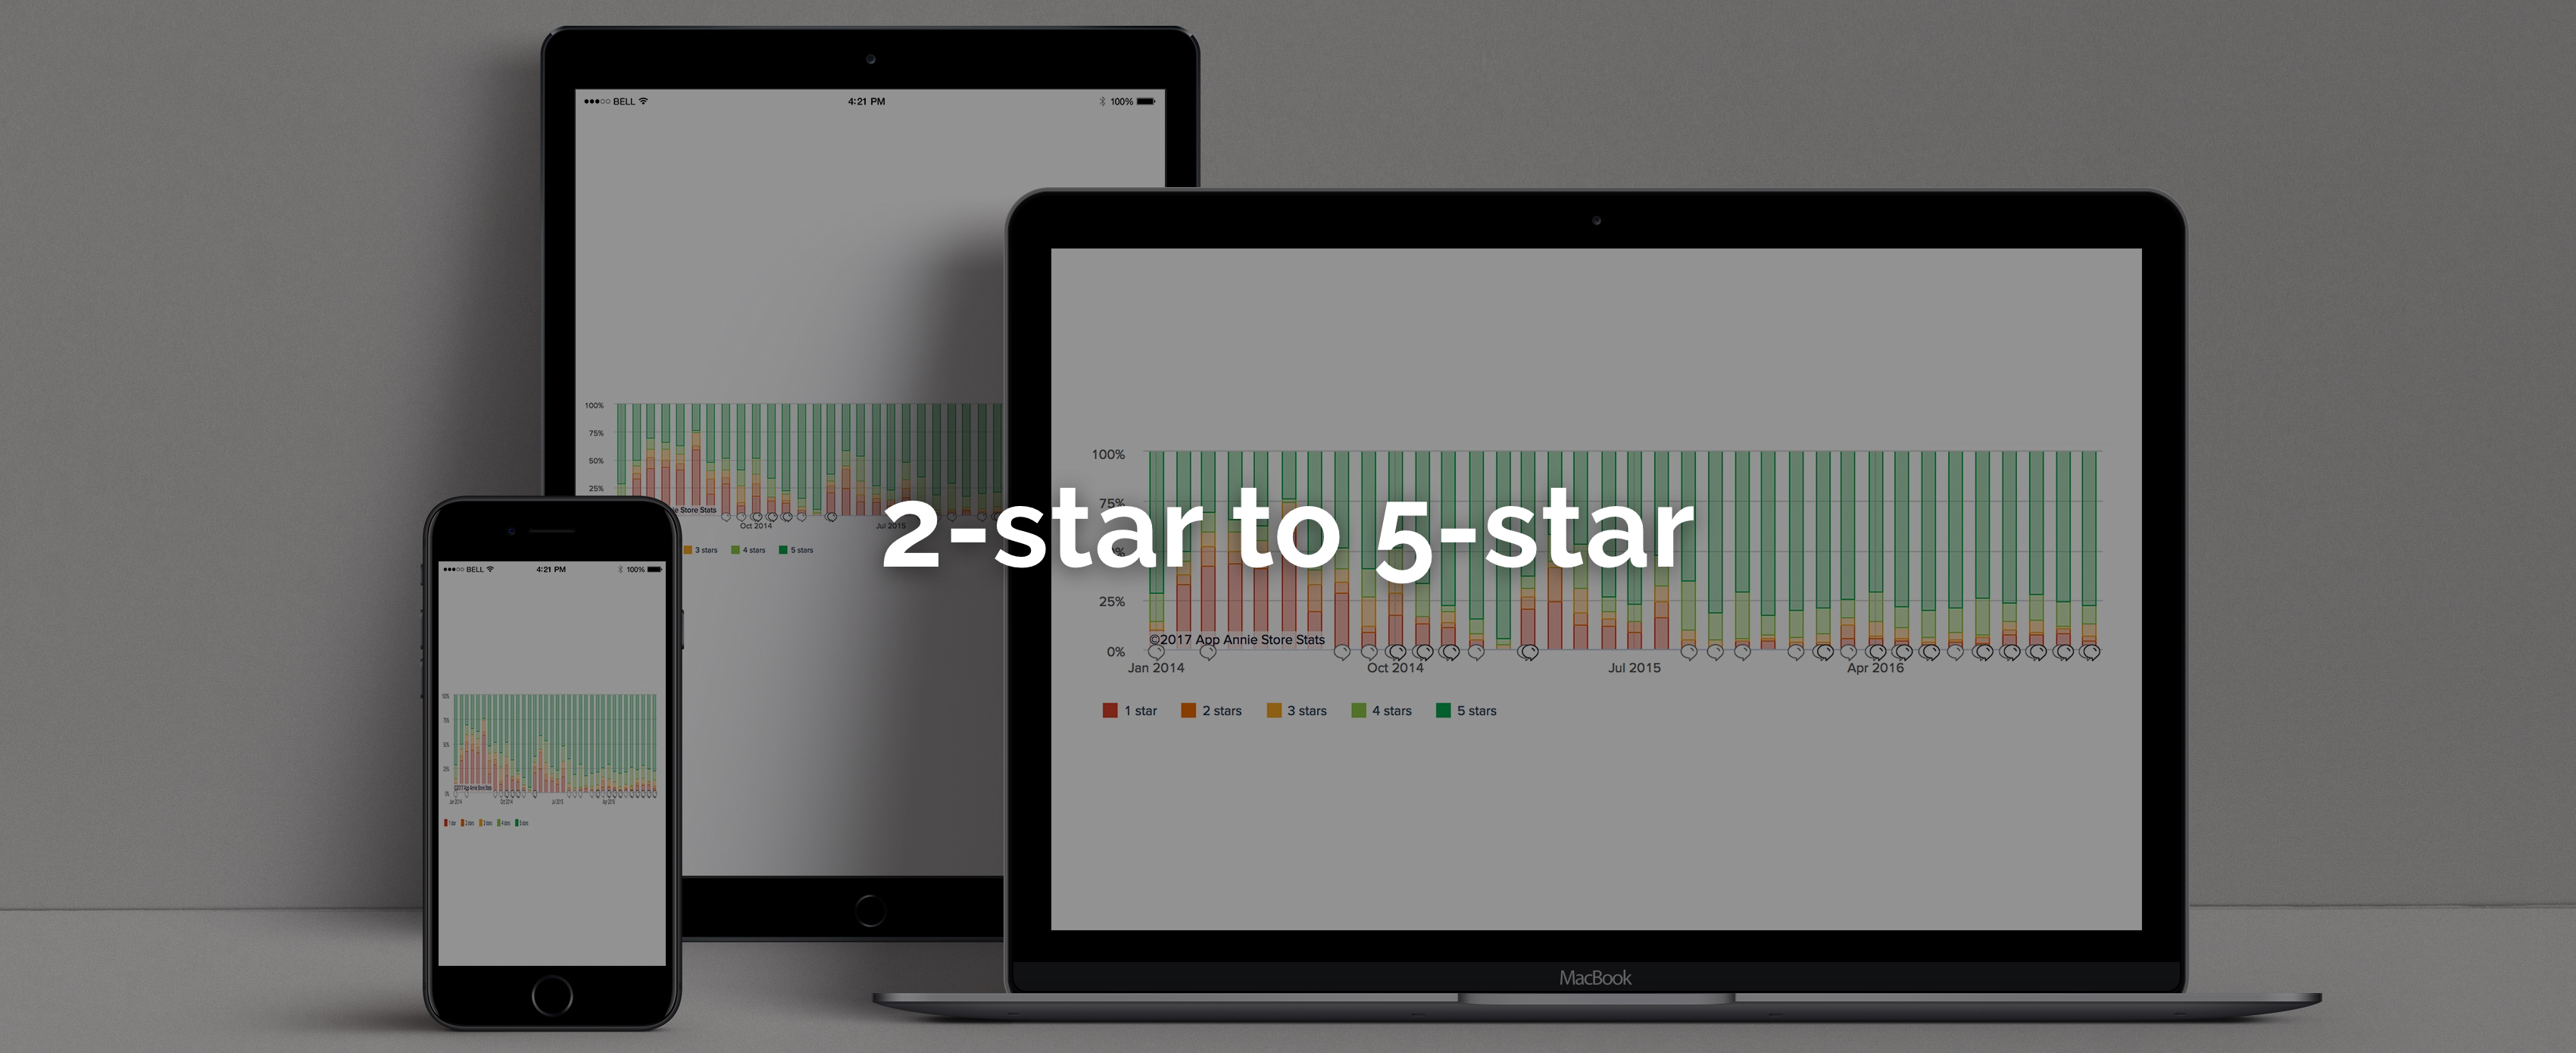 From 2-star to 5-star apps